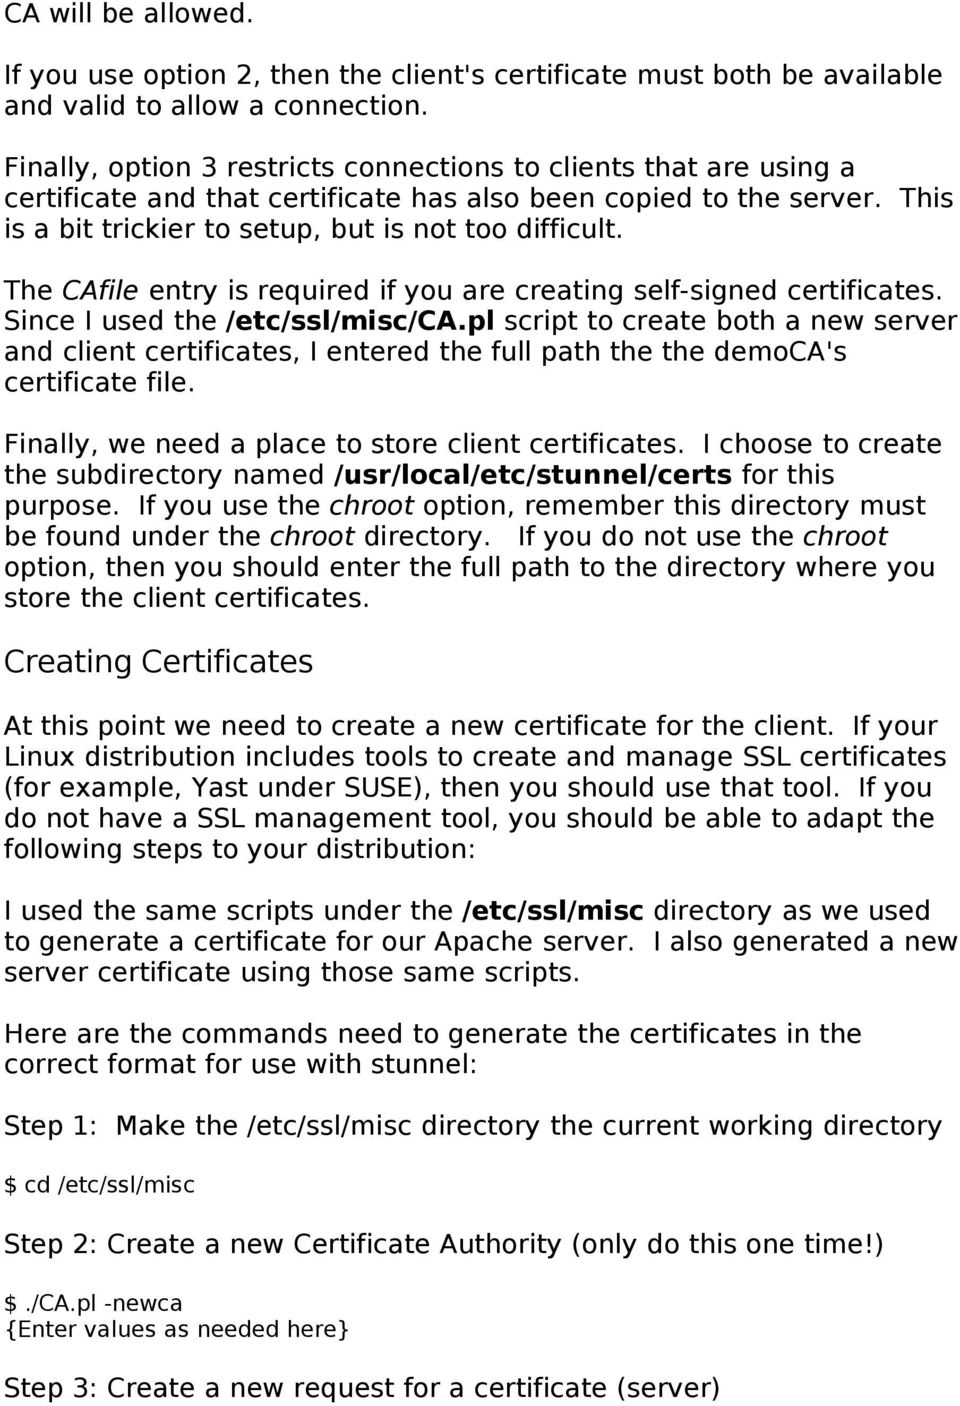 The CAfile entry is required if you are creating self-signed certificates. Since I used the /etc/ssl/misc/ca.